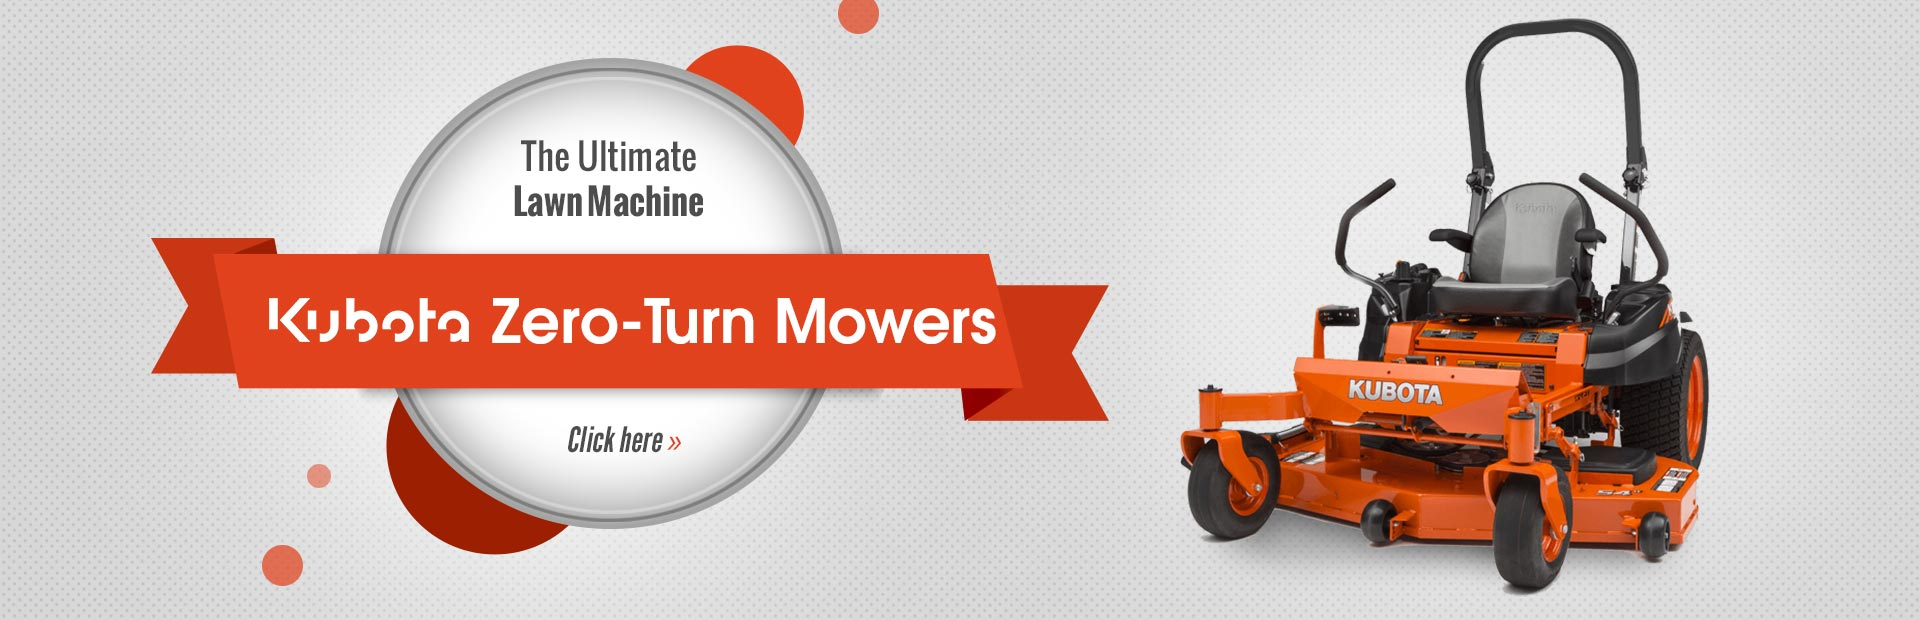 Kubota Zero-Turn Mowers: Click here to view the models.